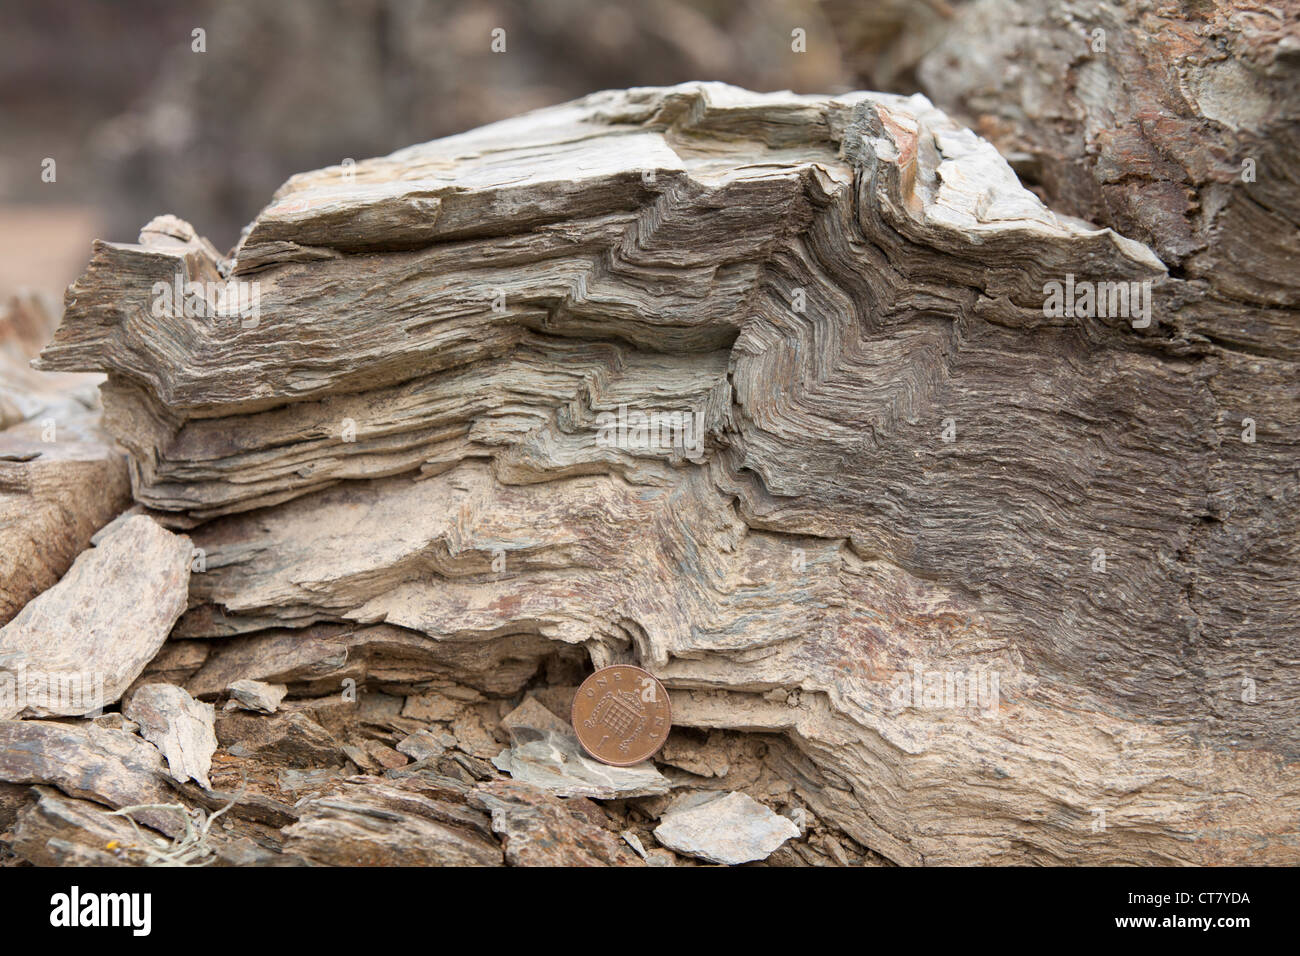 Thrust folded schist outcrop. - Stock Image